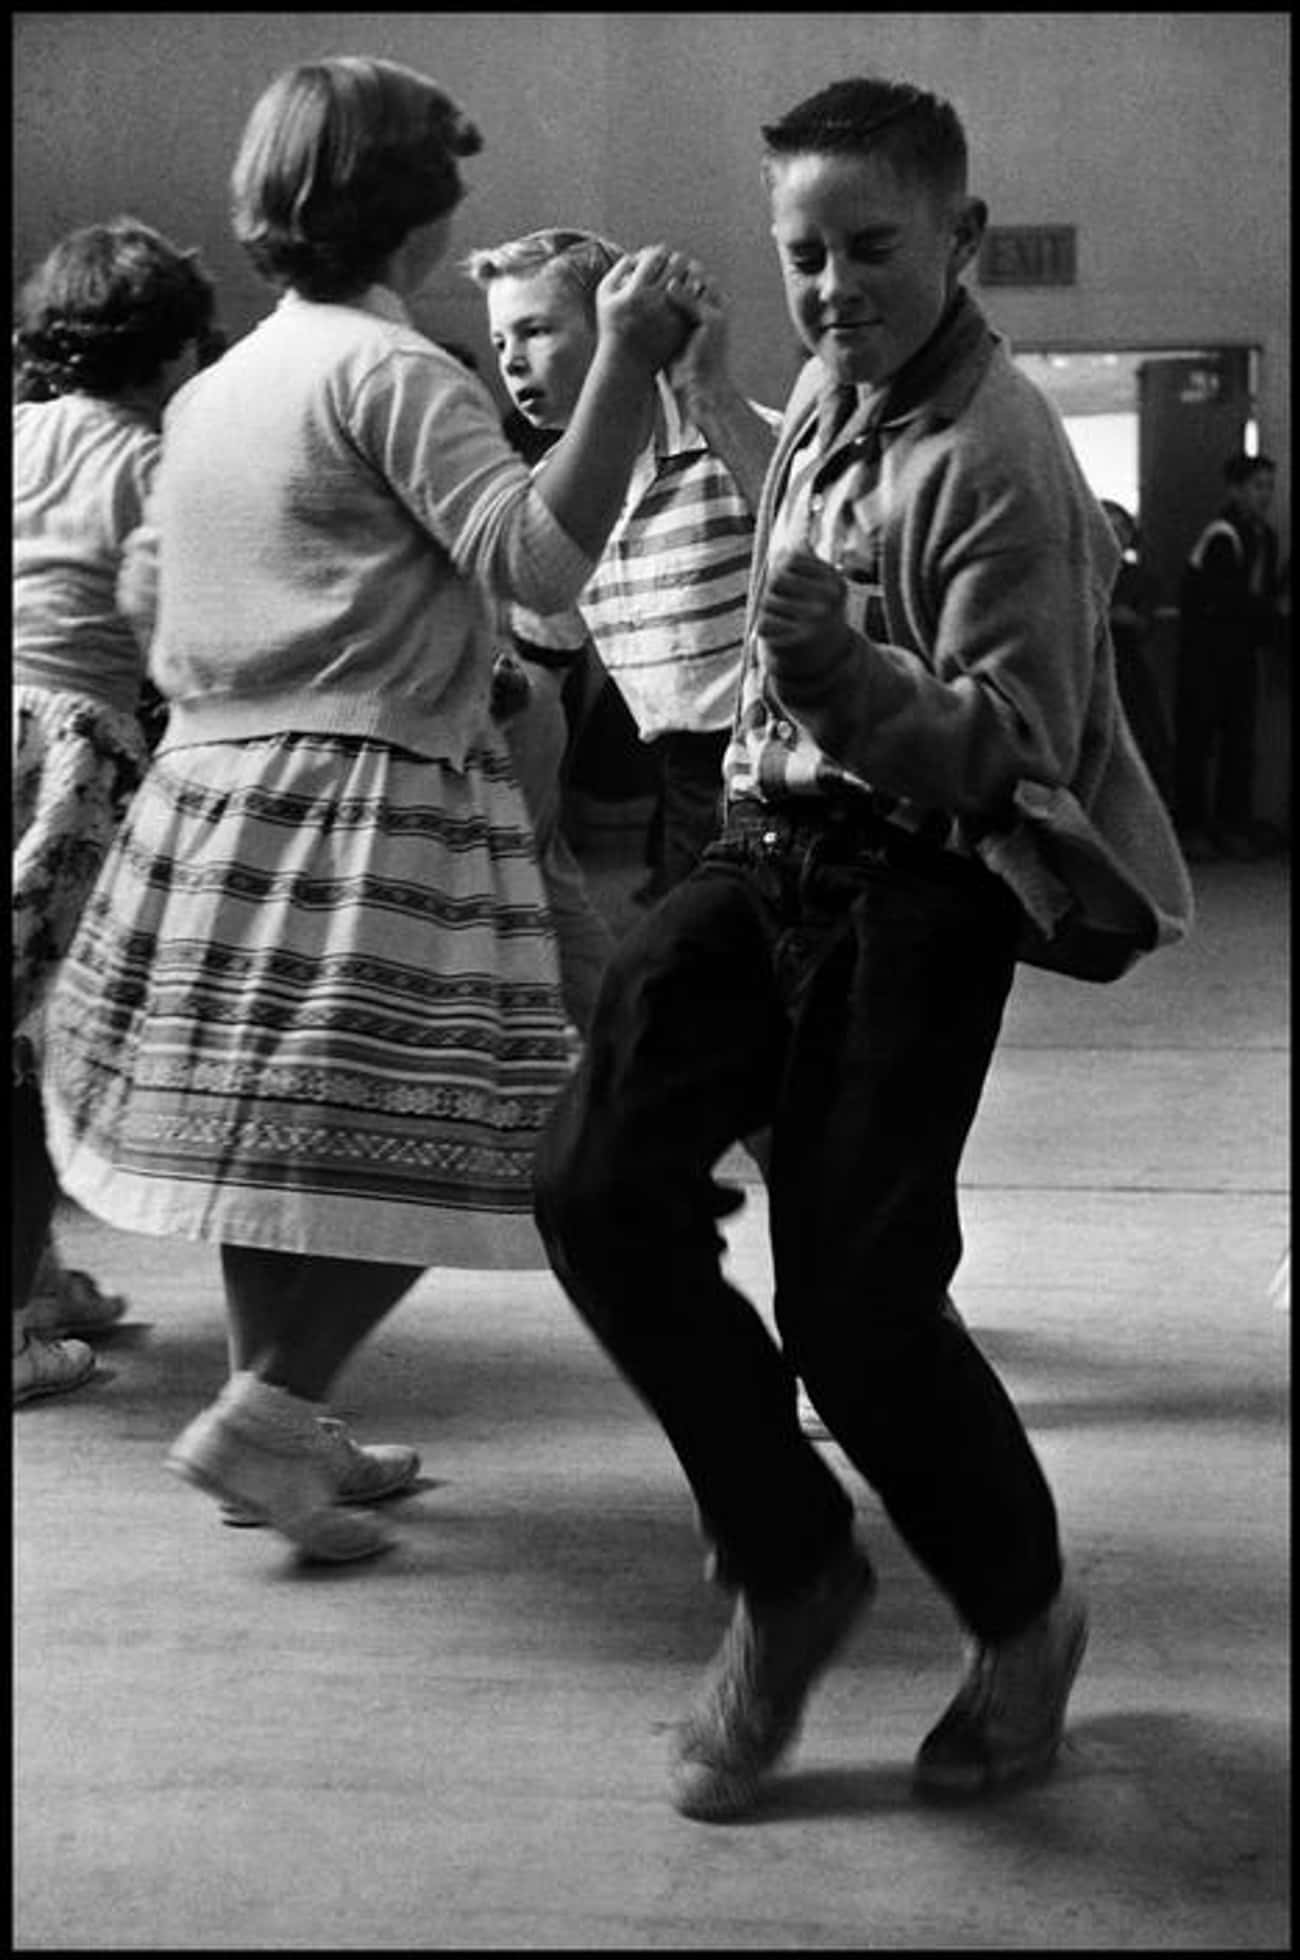 High School Dance, 1950s is listed (or ranked) 4 on the list 100 Incredible Vintage Photos